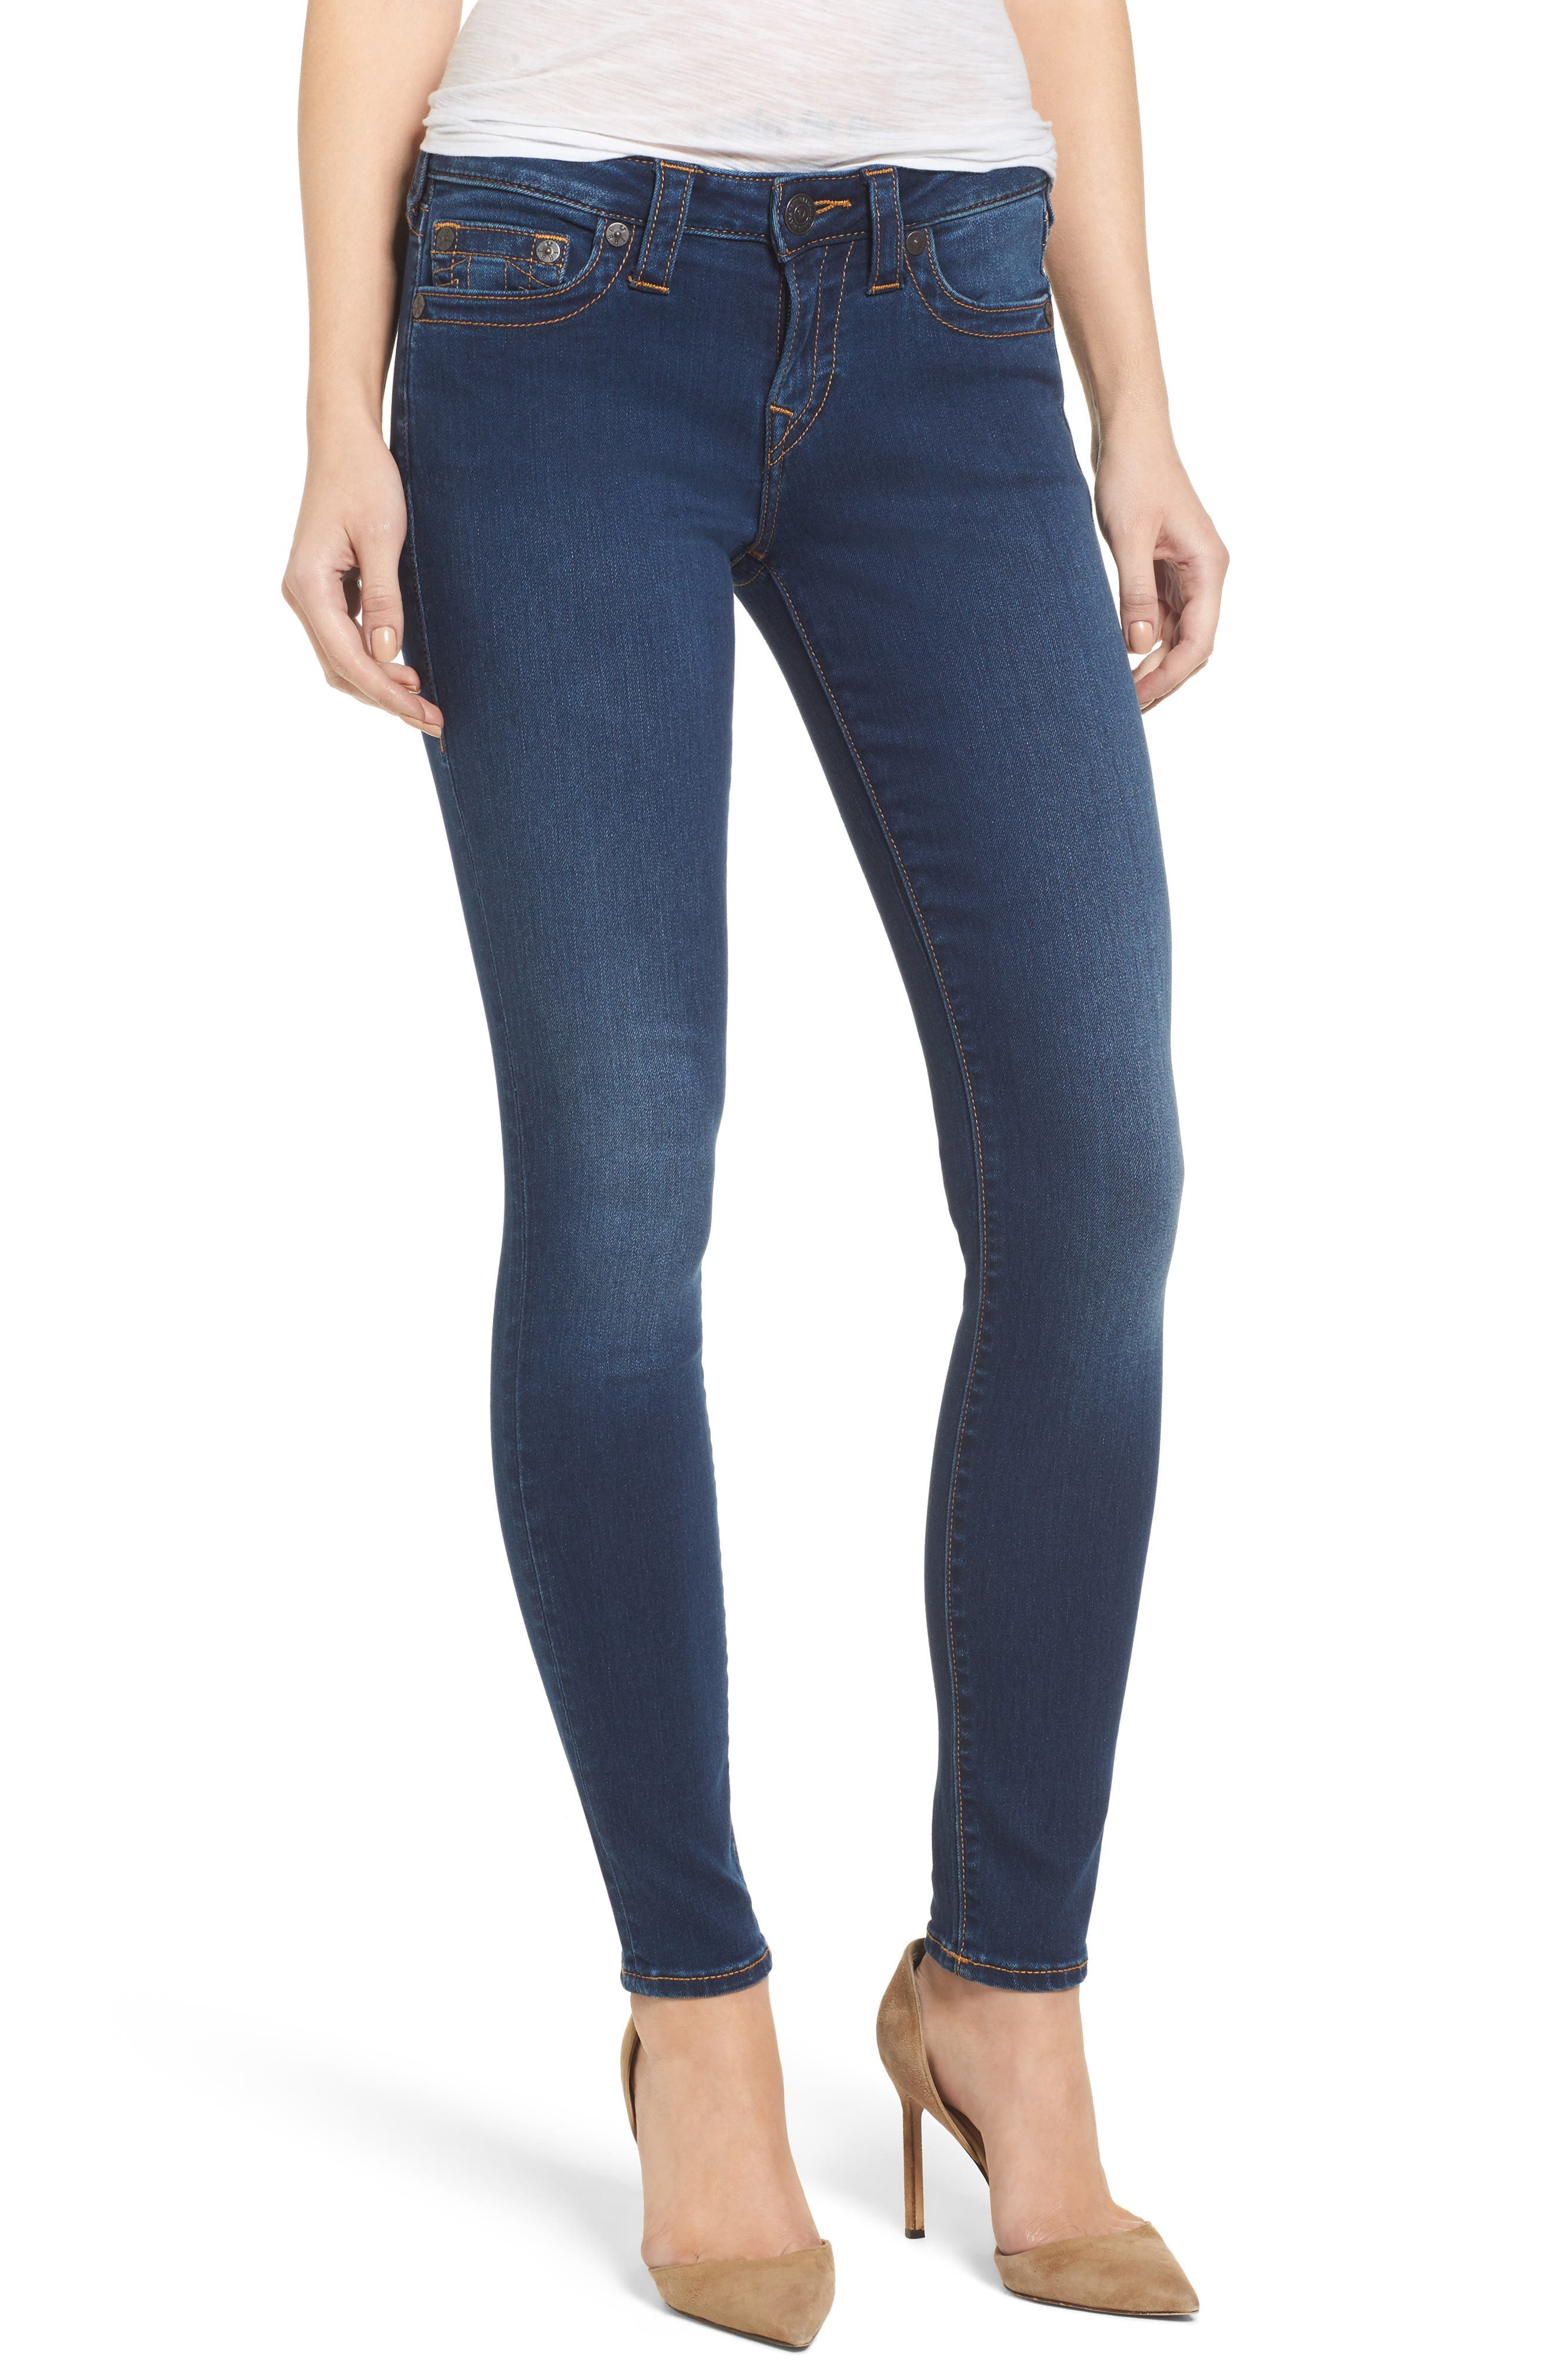 Halle Mid Rise Skinny Jeans,                         Main,                         color, 400